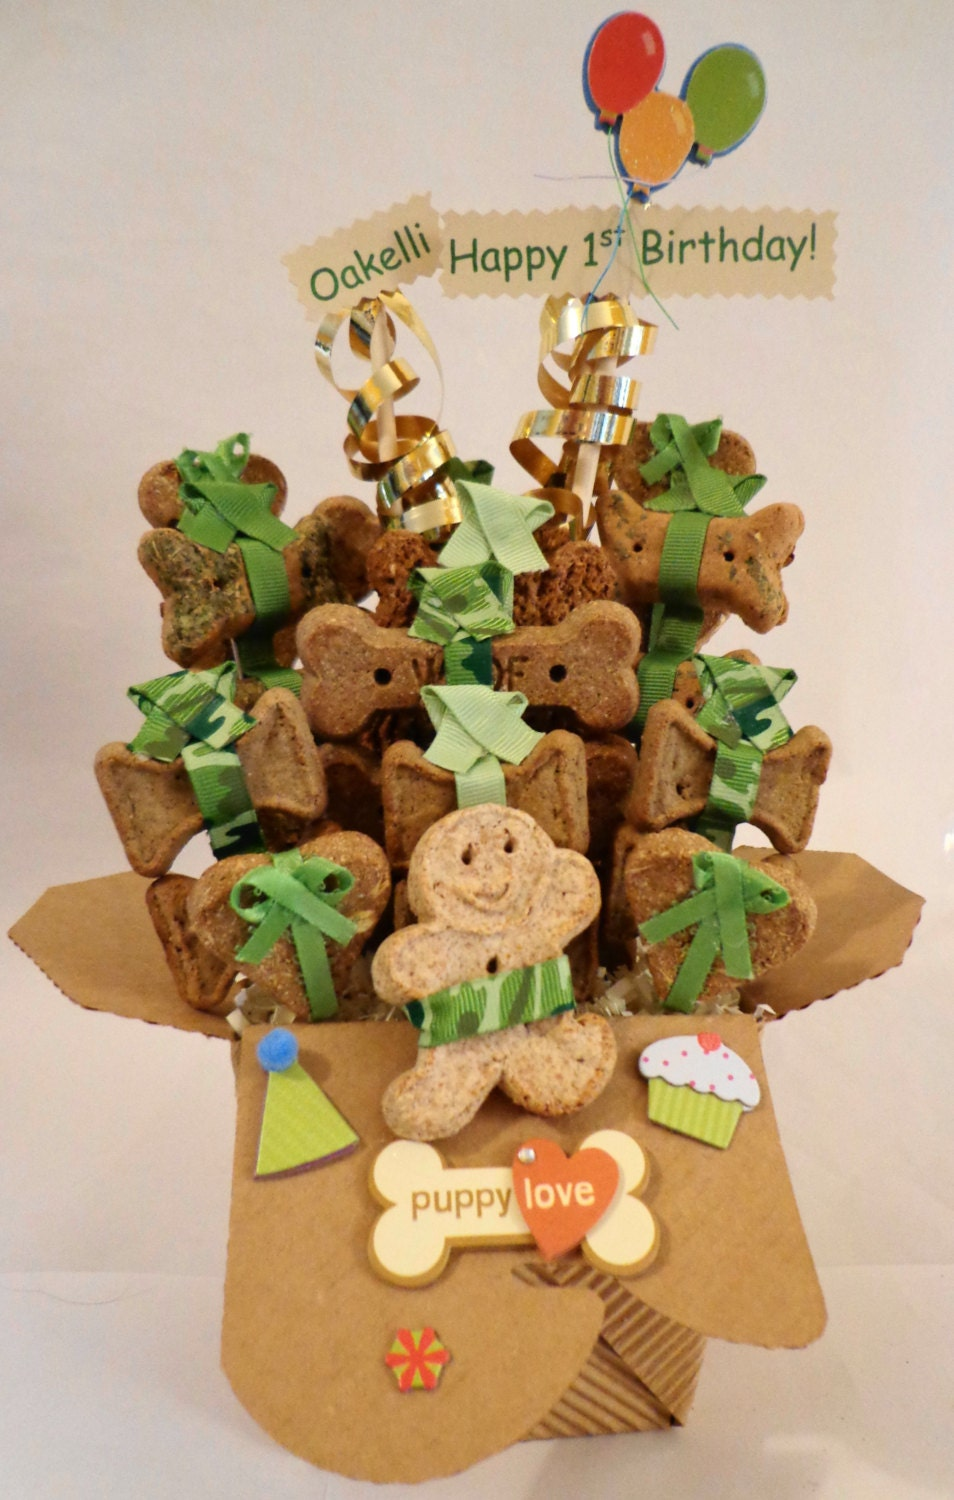 Etsy Dog Gift Baskets : Birthday dog biscuit treat gift basket by petiblecreations